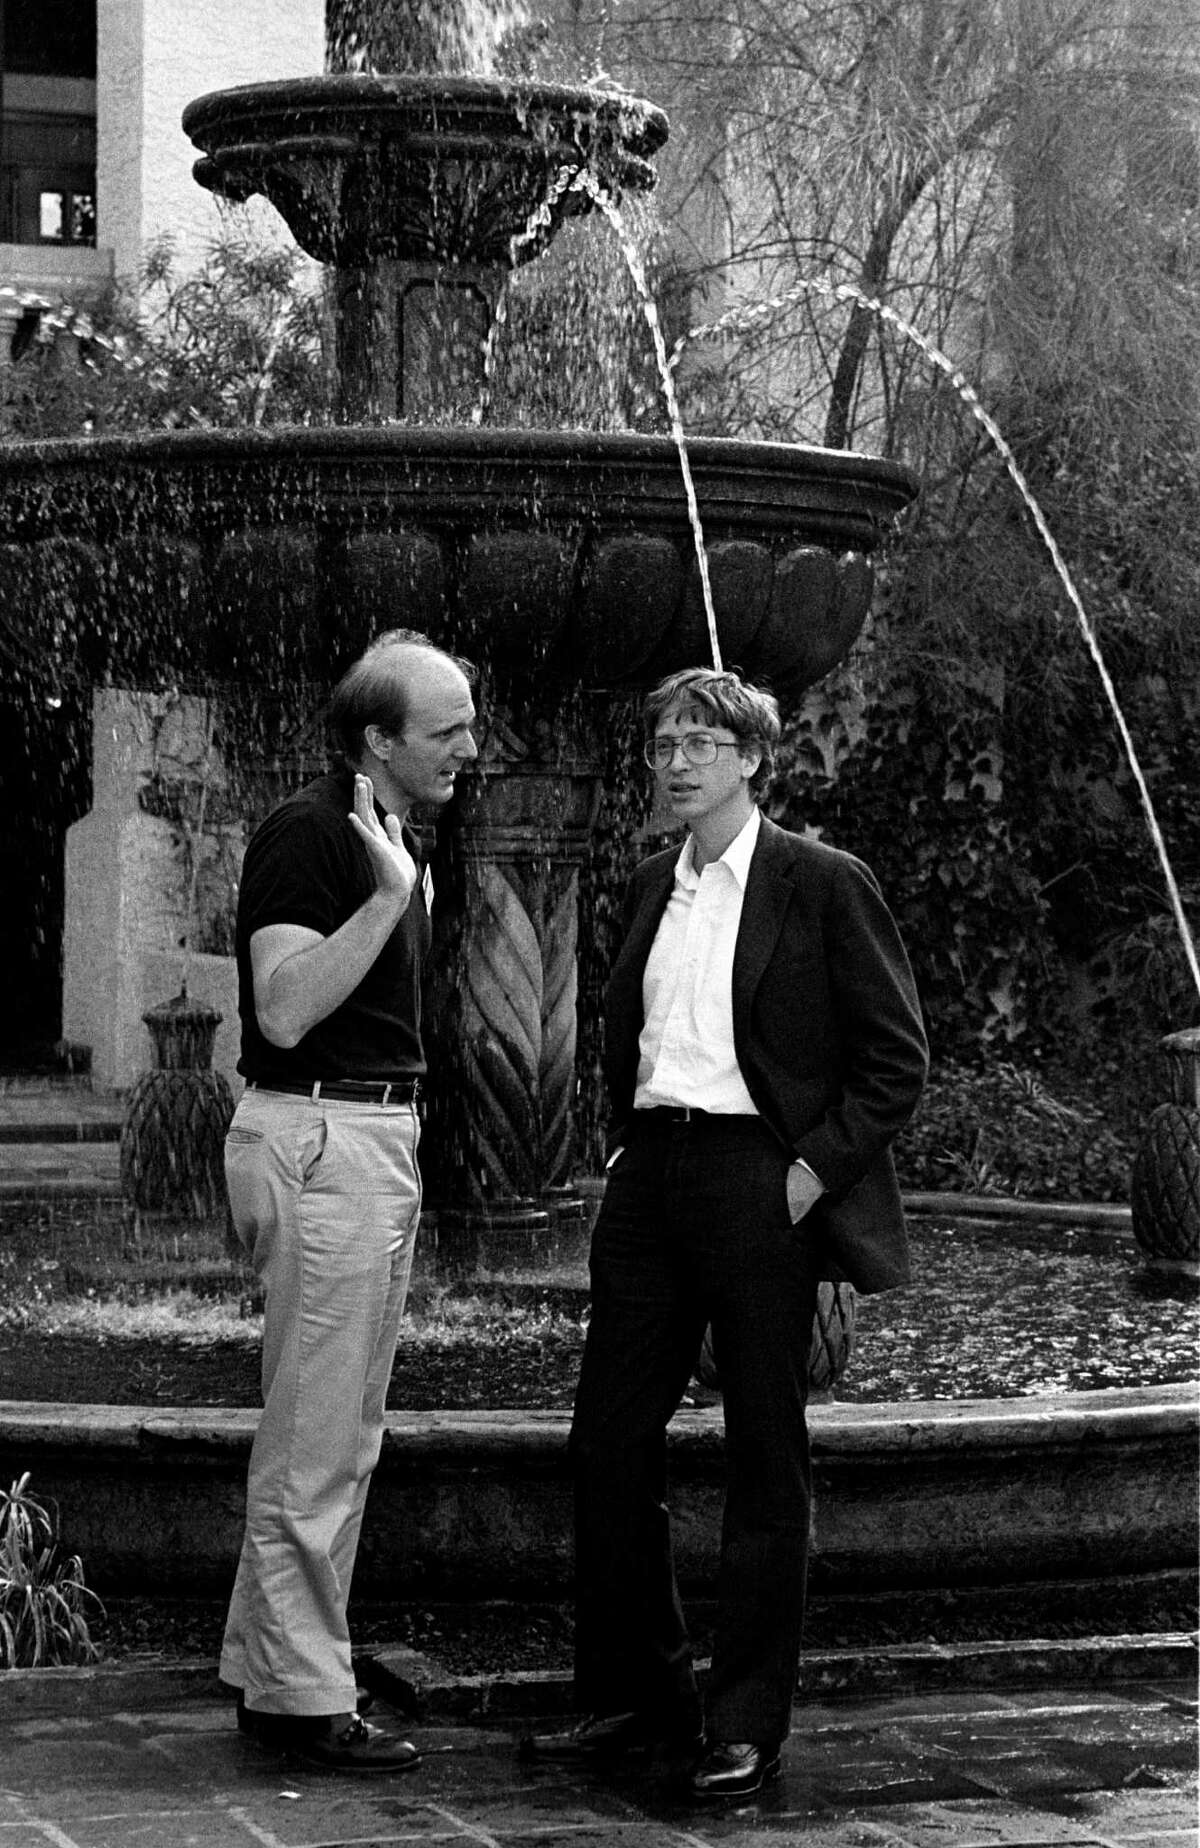 Ballmer (left) and Microsoft co-founder Bill Gates speak next to a fountain at the annual PC Forum, in Phoenix in 1986. Ballmer joined Microsoft in 1980, as the company's first business manager.